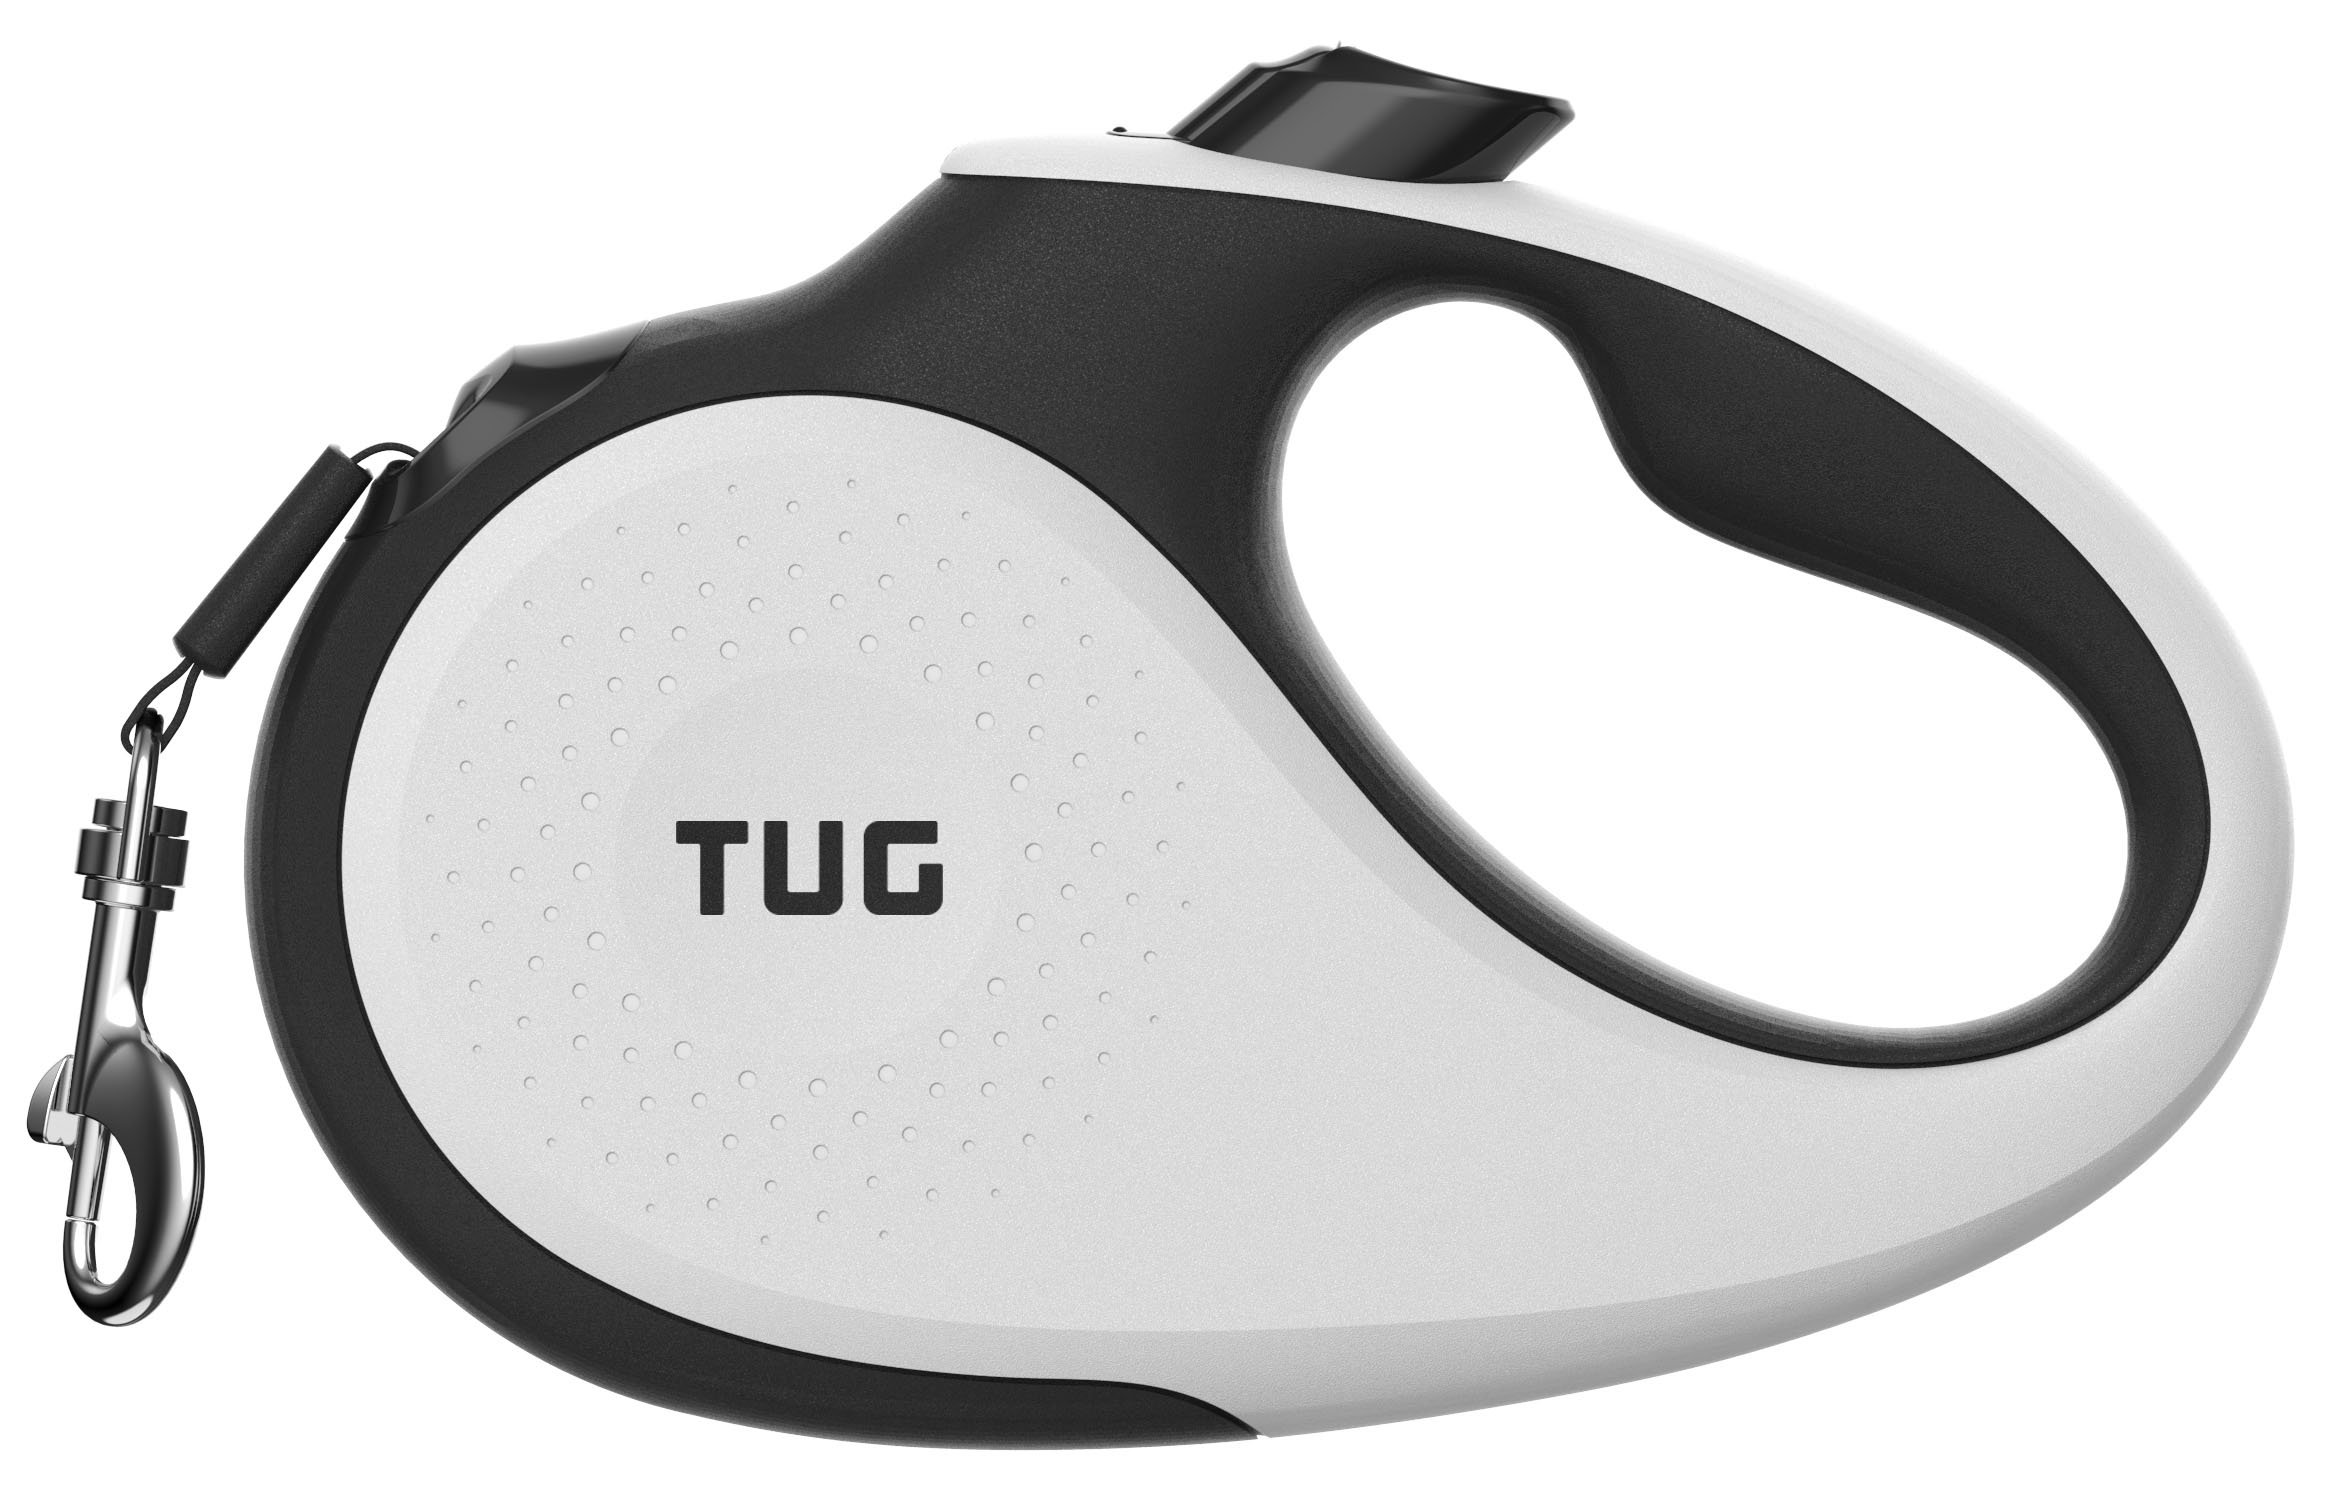 TUG Patented 360° Tangle-Free, Heavy Duty Retractable Dog Leash with Anti-Slip Handle; 16 ft Strong Nylon Tape/Ribbon; One-Handed Brake, Pause, Lock (Small, White) by TUG